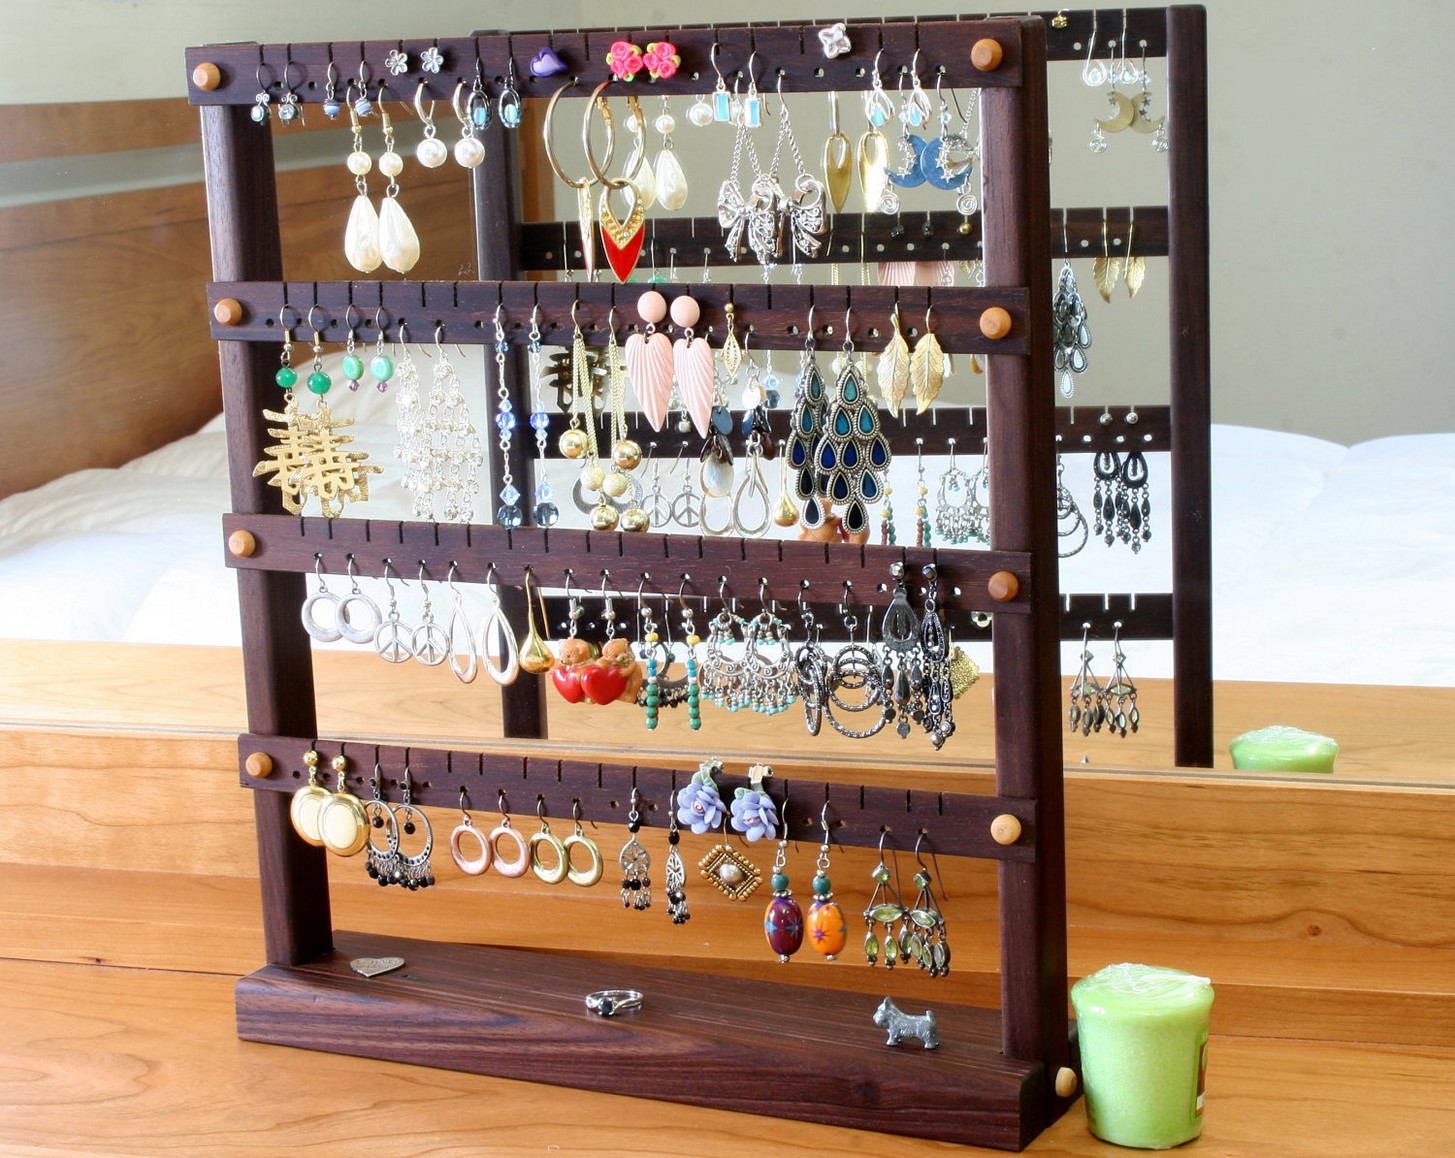 Modern jewelry display ideas for earrings hung on wooden display hangers.